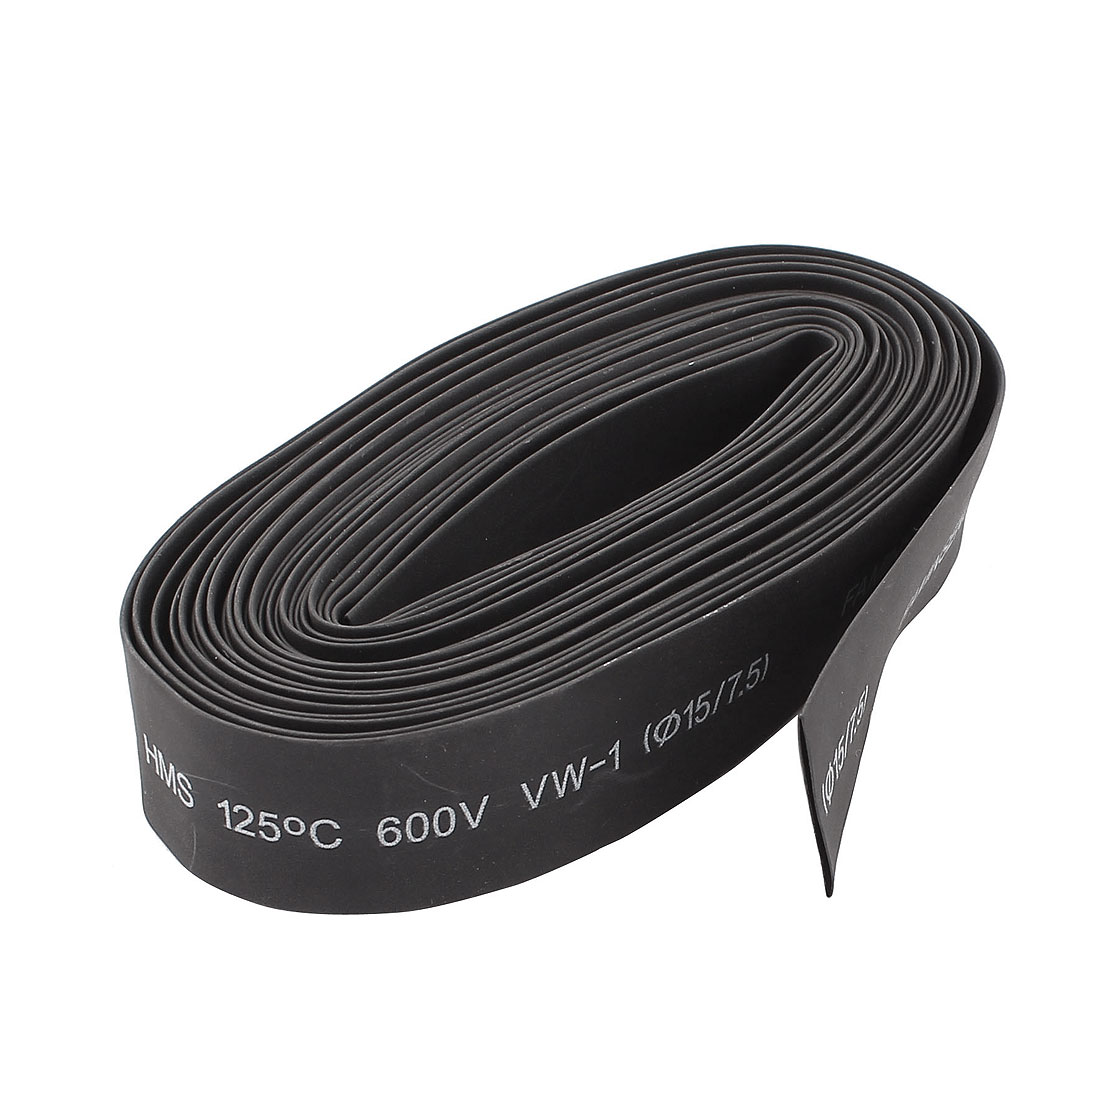 600V 15mm Dia 2:1 Polyolefin Heat Shrink Tubing Shrinkable Tube Black 6M 20Ft